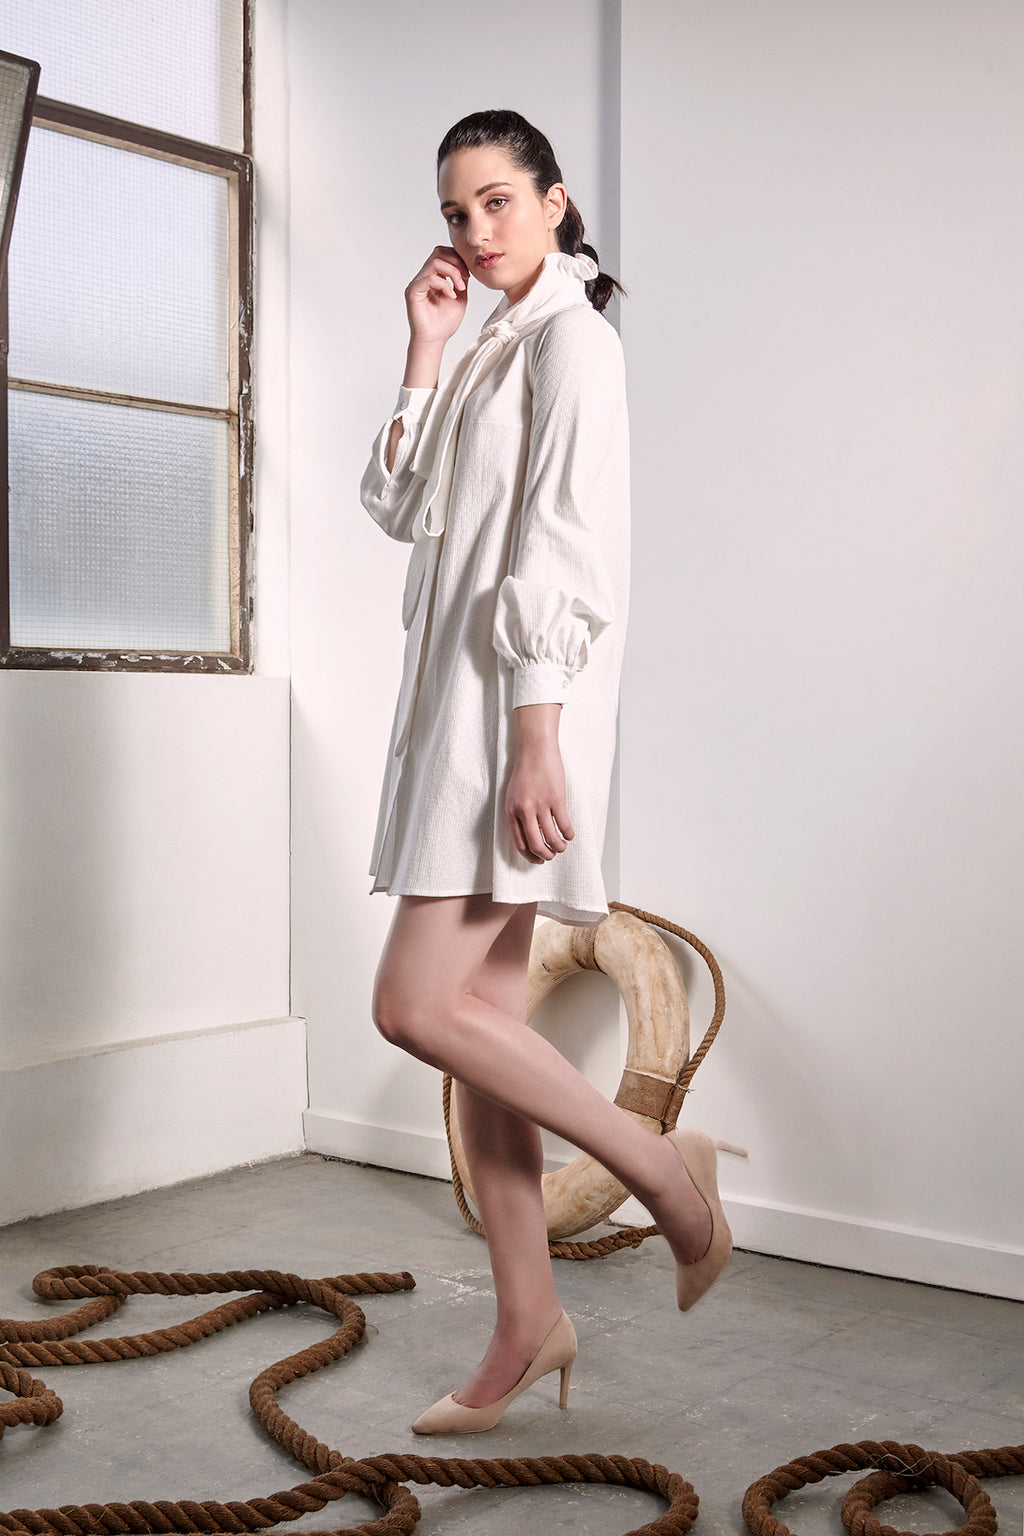 White Provence Dress Dresses The Fashion Advocate ethical Australian fashion designer boutique Melbourne sustainable clothes